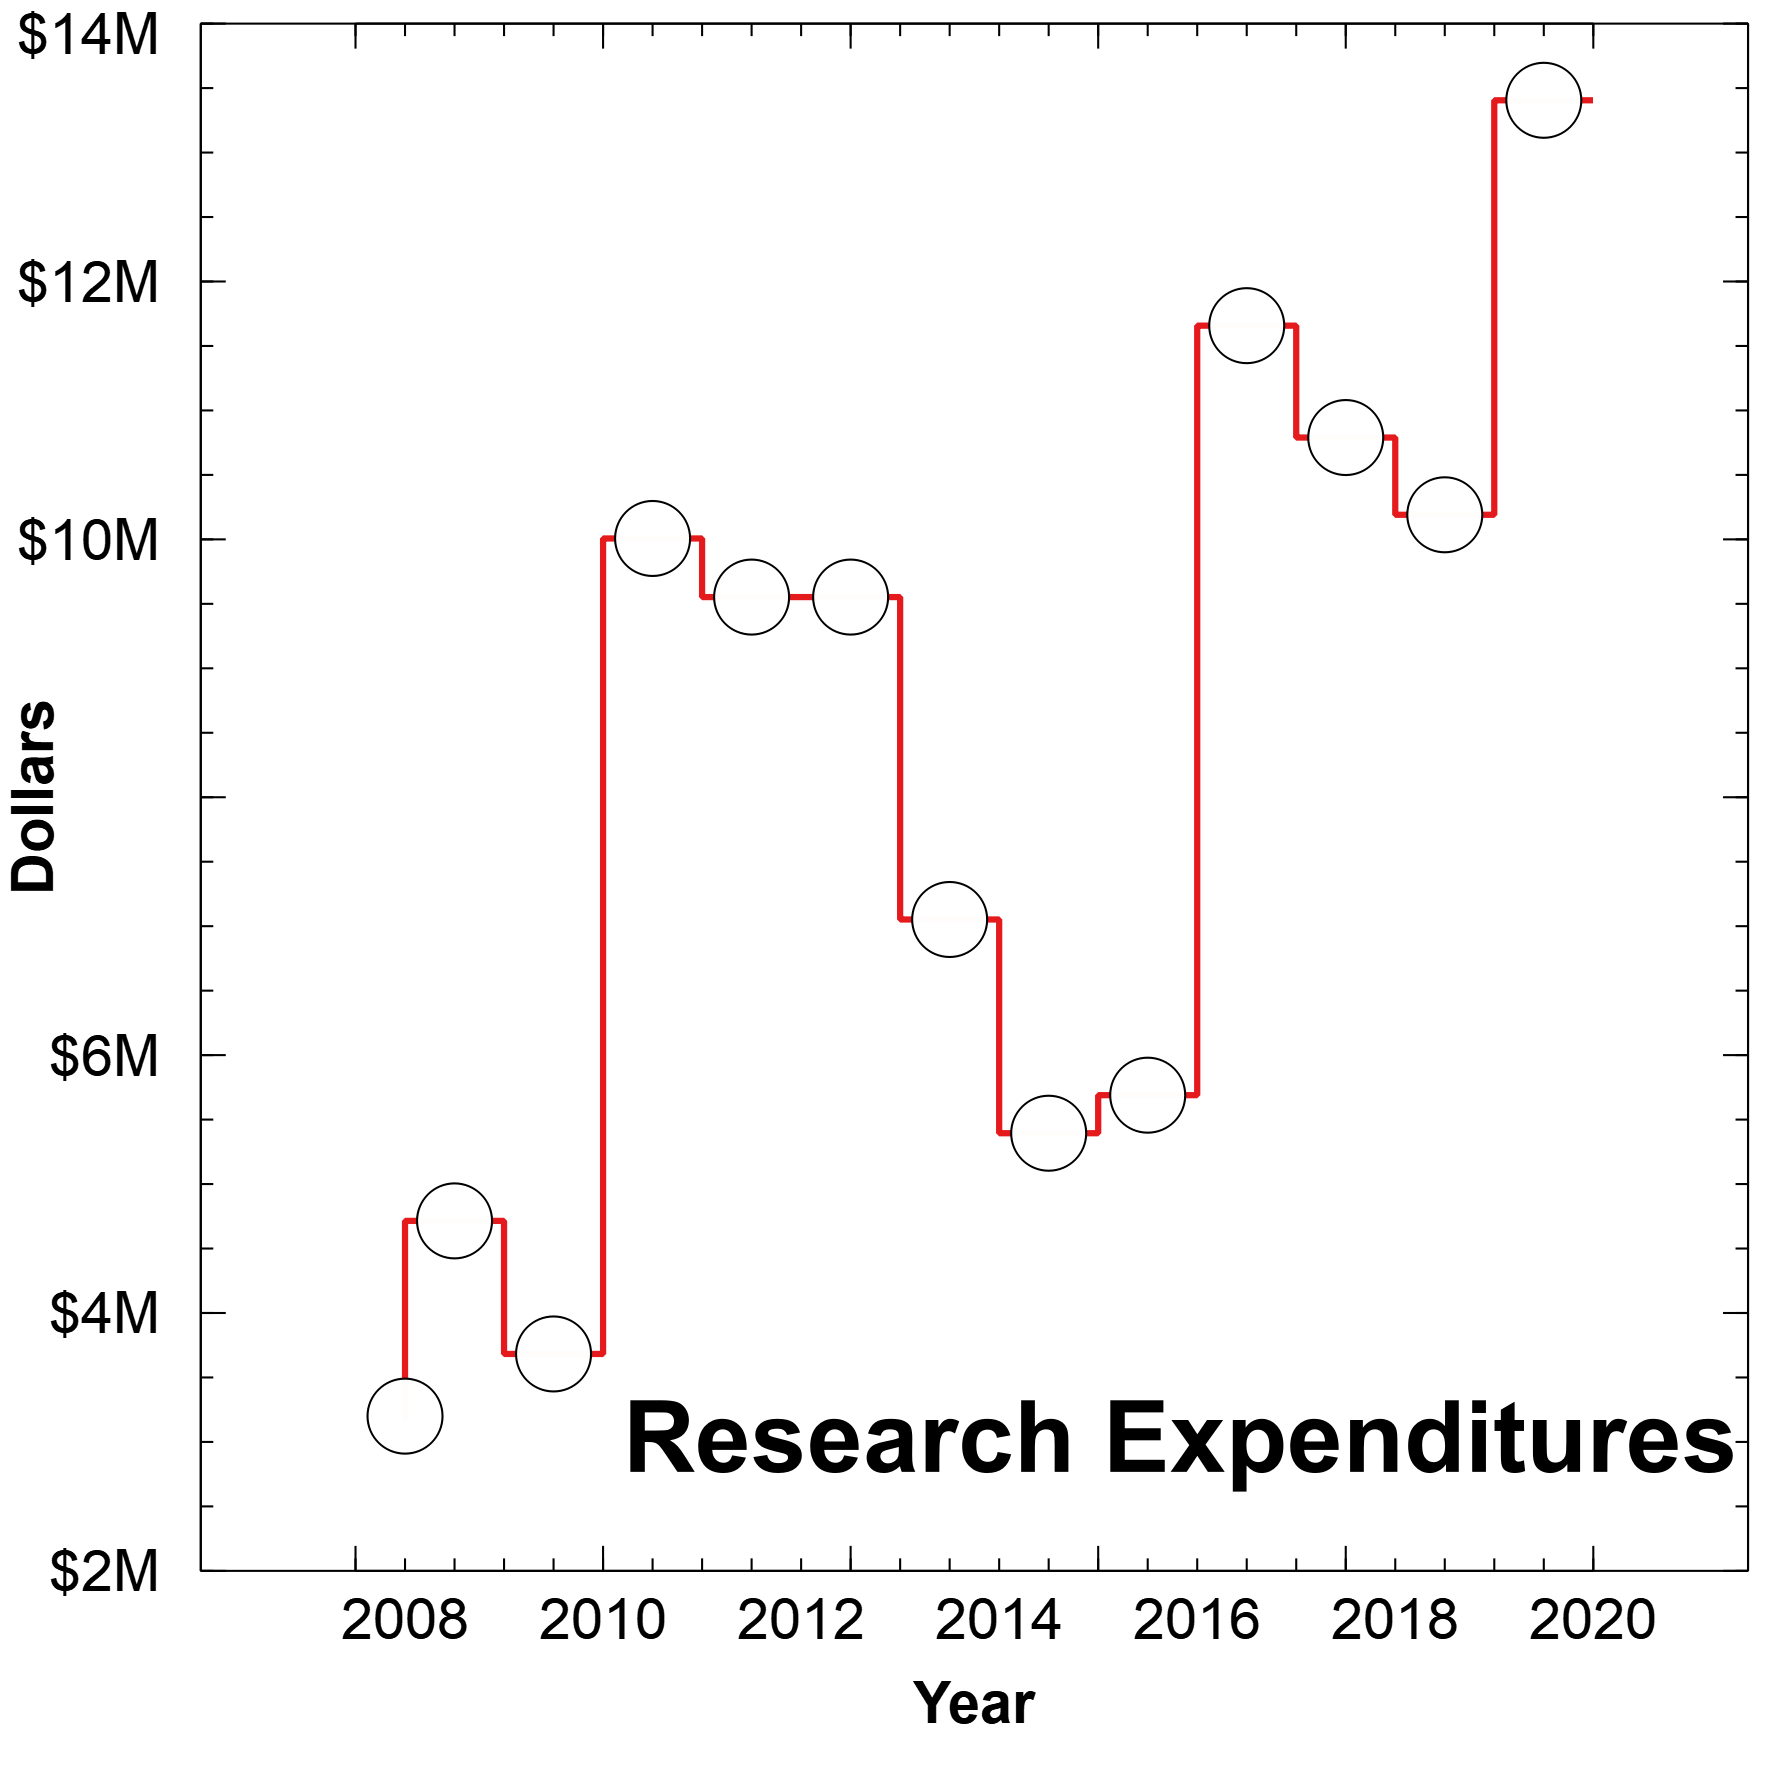 Research Expenditures 2020